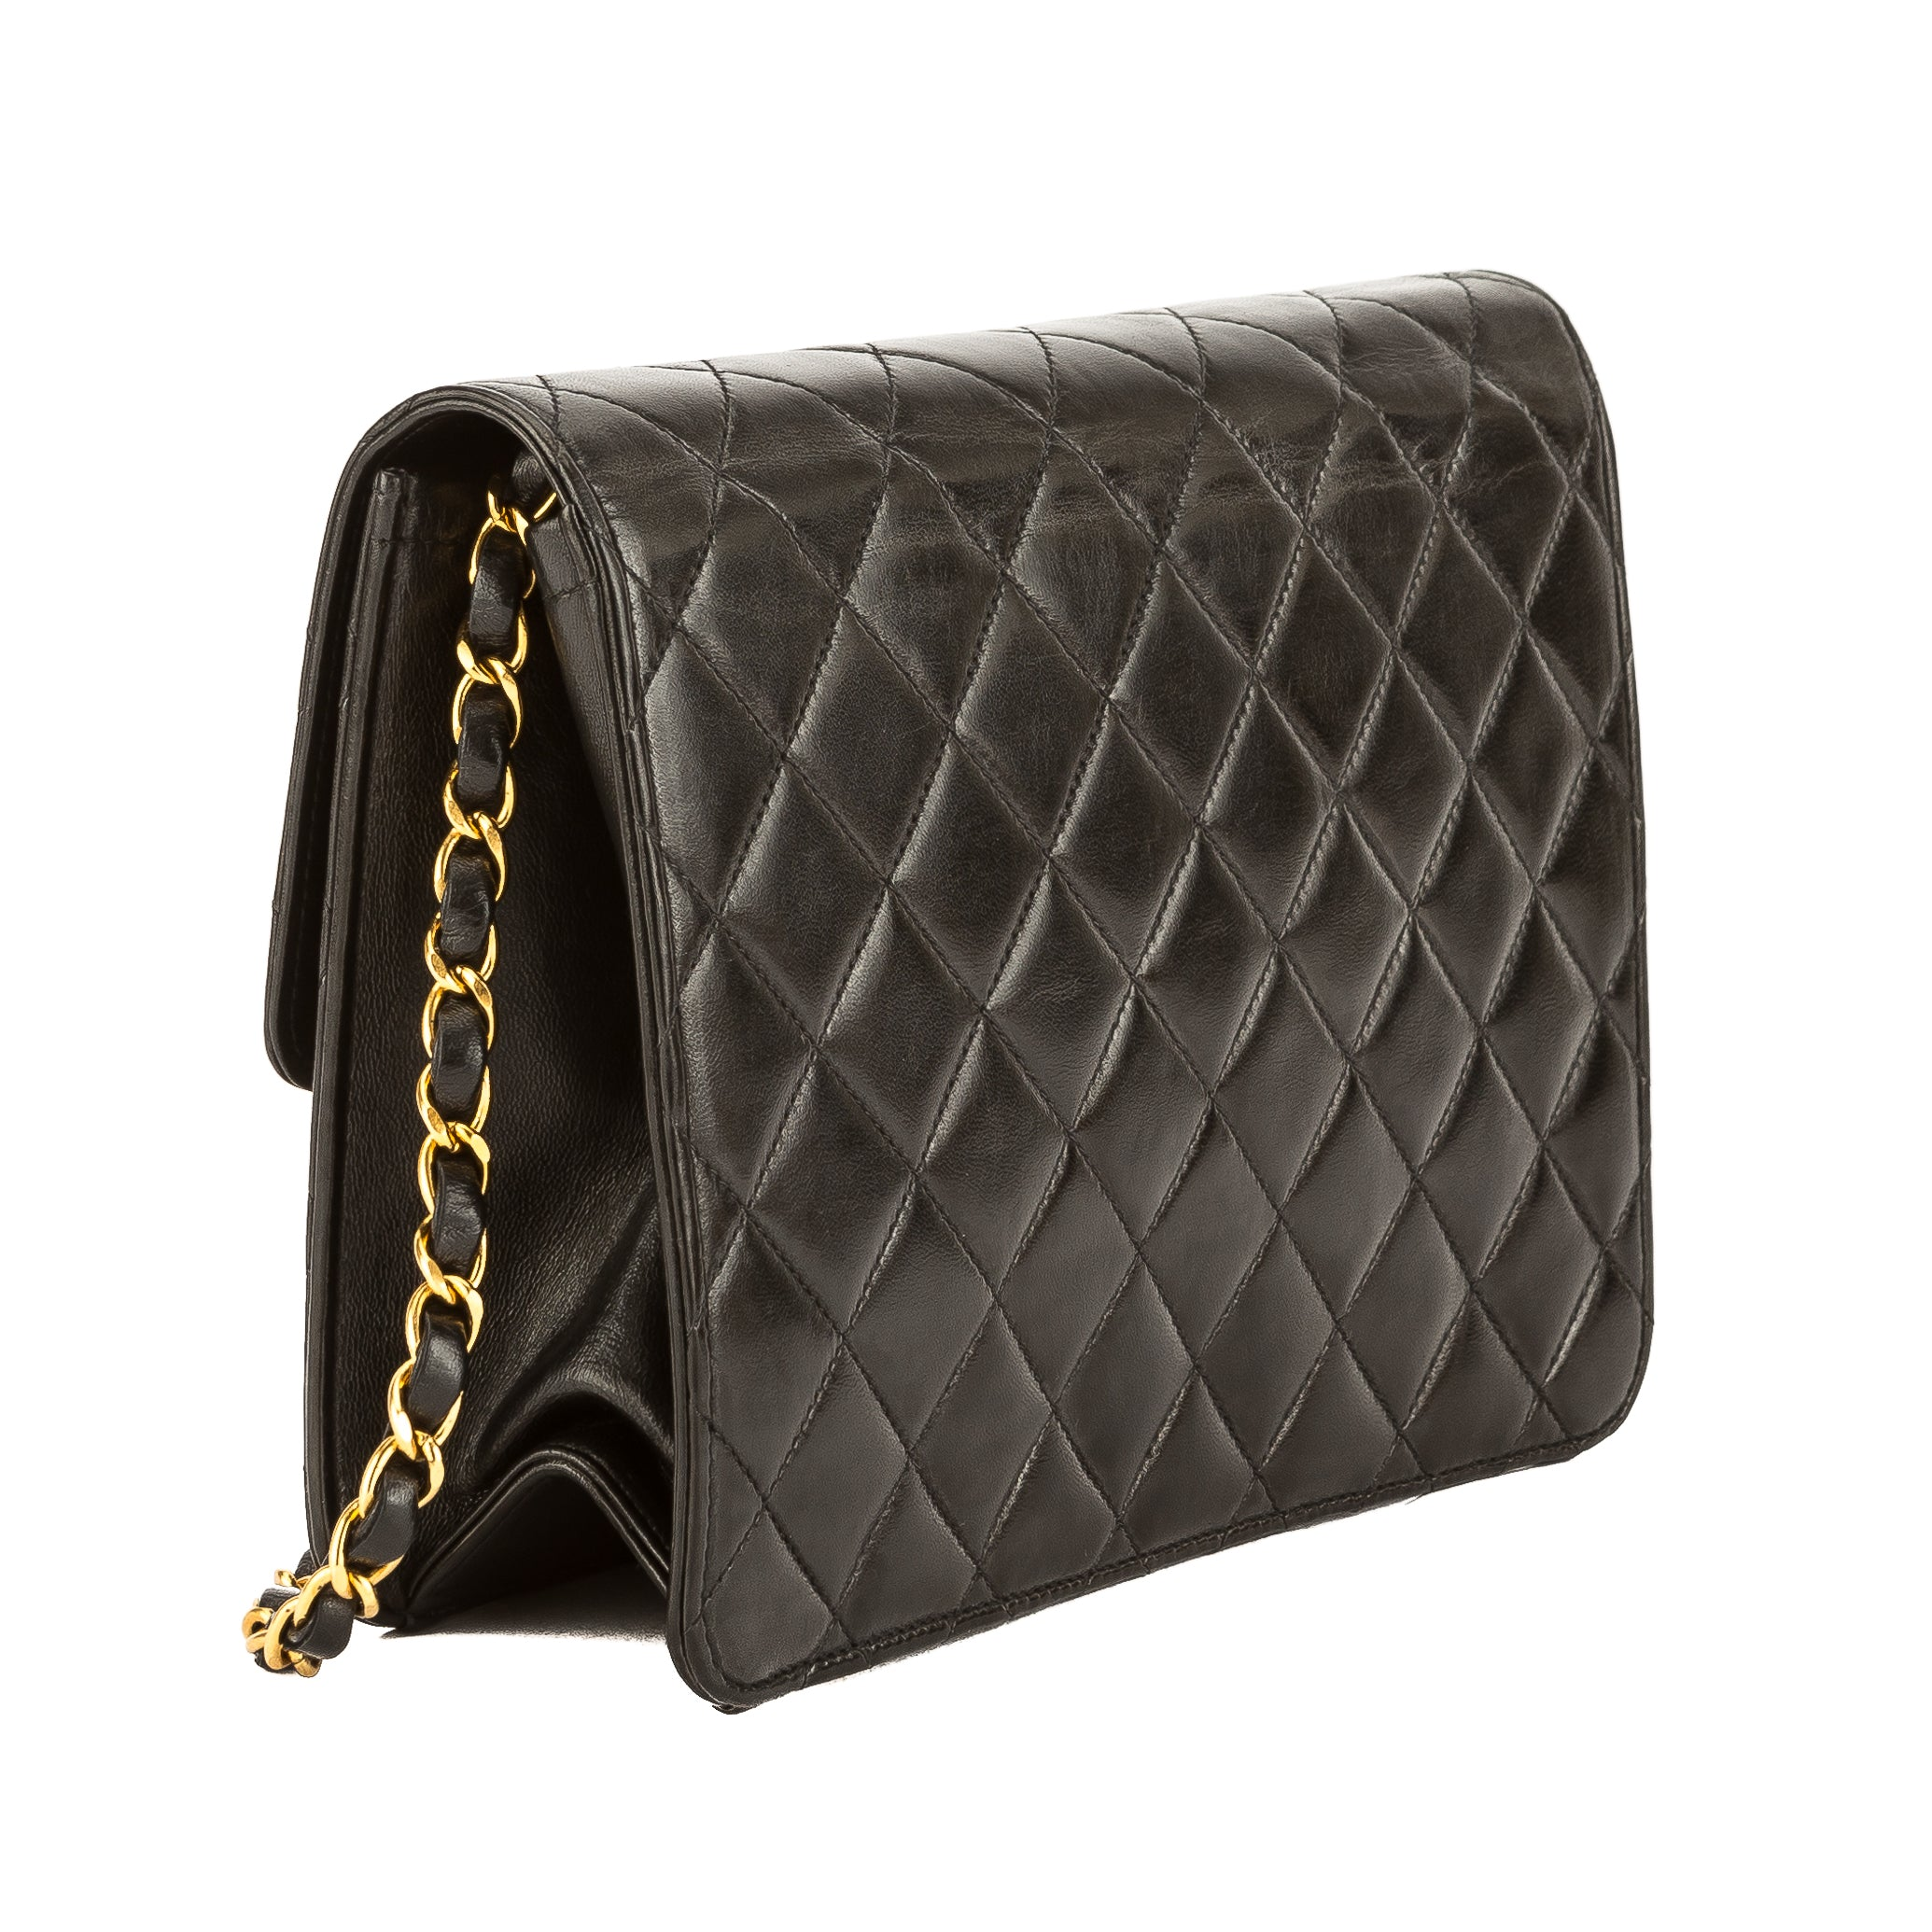 b28e40943e59 Chanel Black Quilted Lambskin Leather Chain Clutch Bag (3755009 ...